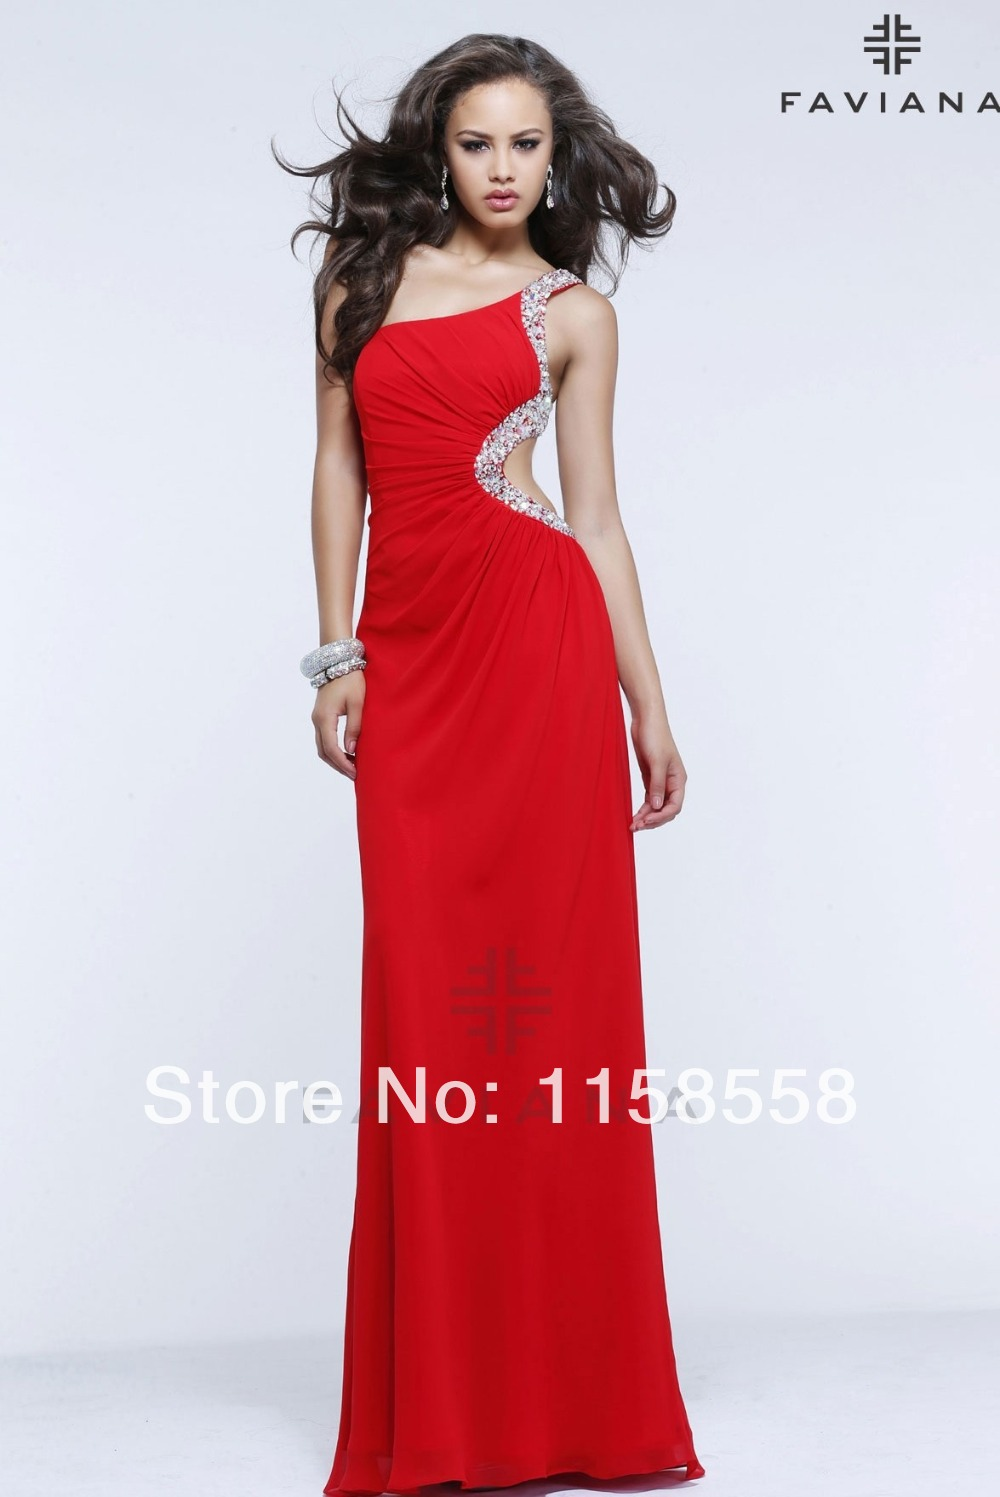 Aliexpress.com : Buy Prom Dresses For Rent One Shoulder Dress ...